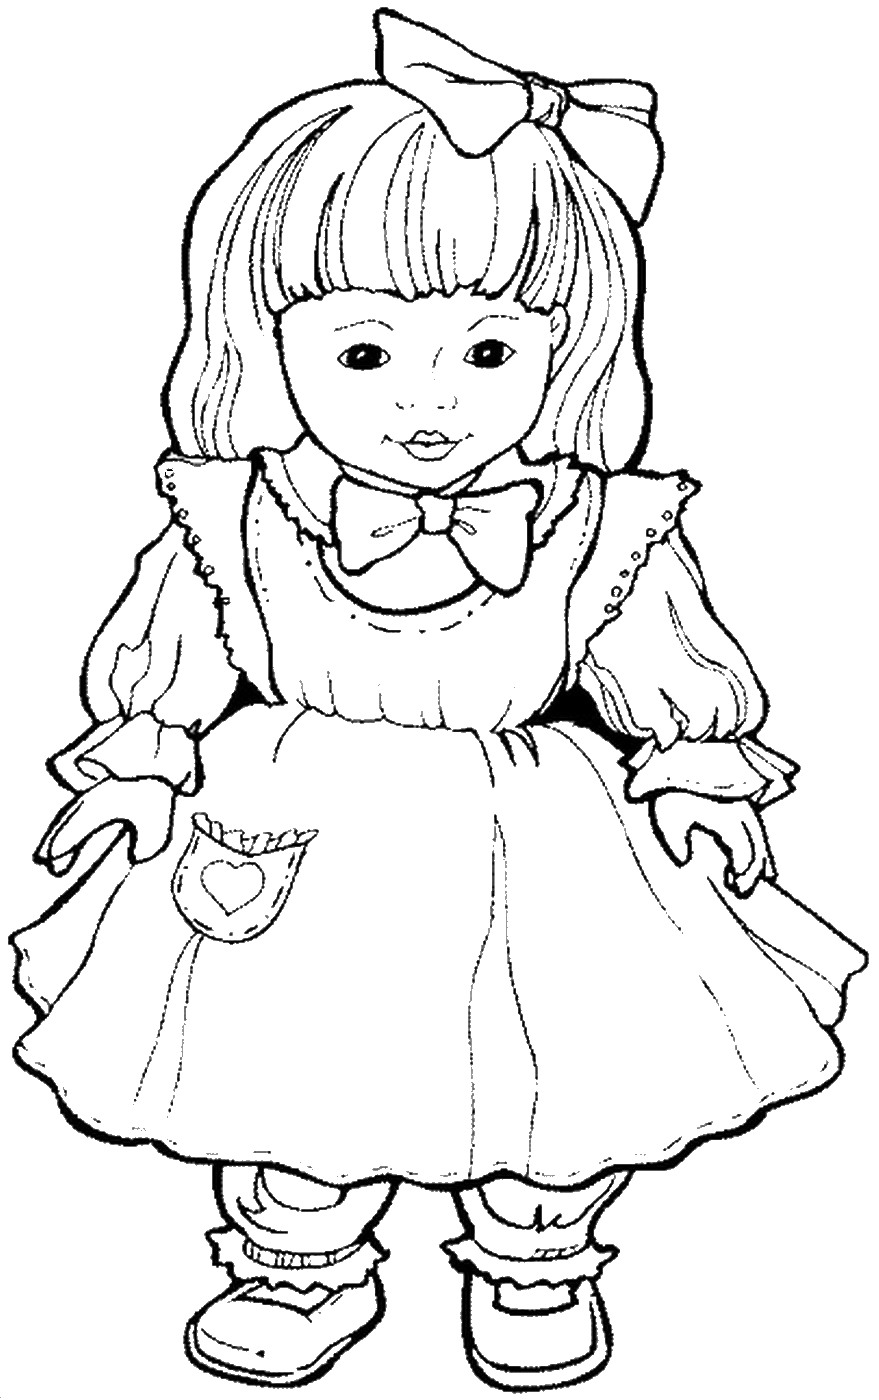 dolls colouring pages dolls coloring pages free printable dolls coloring pages dolls pages colouring